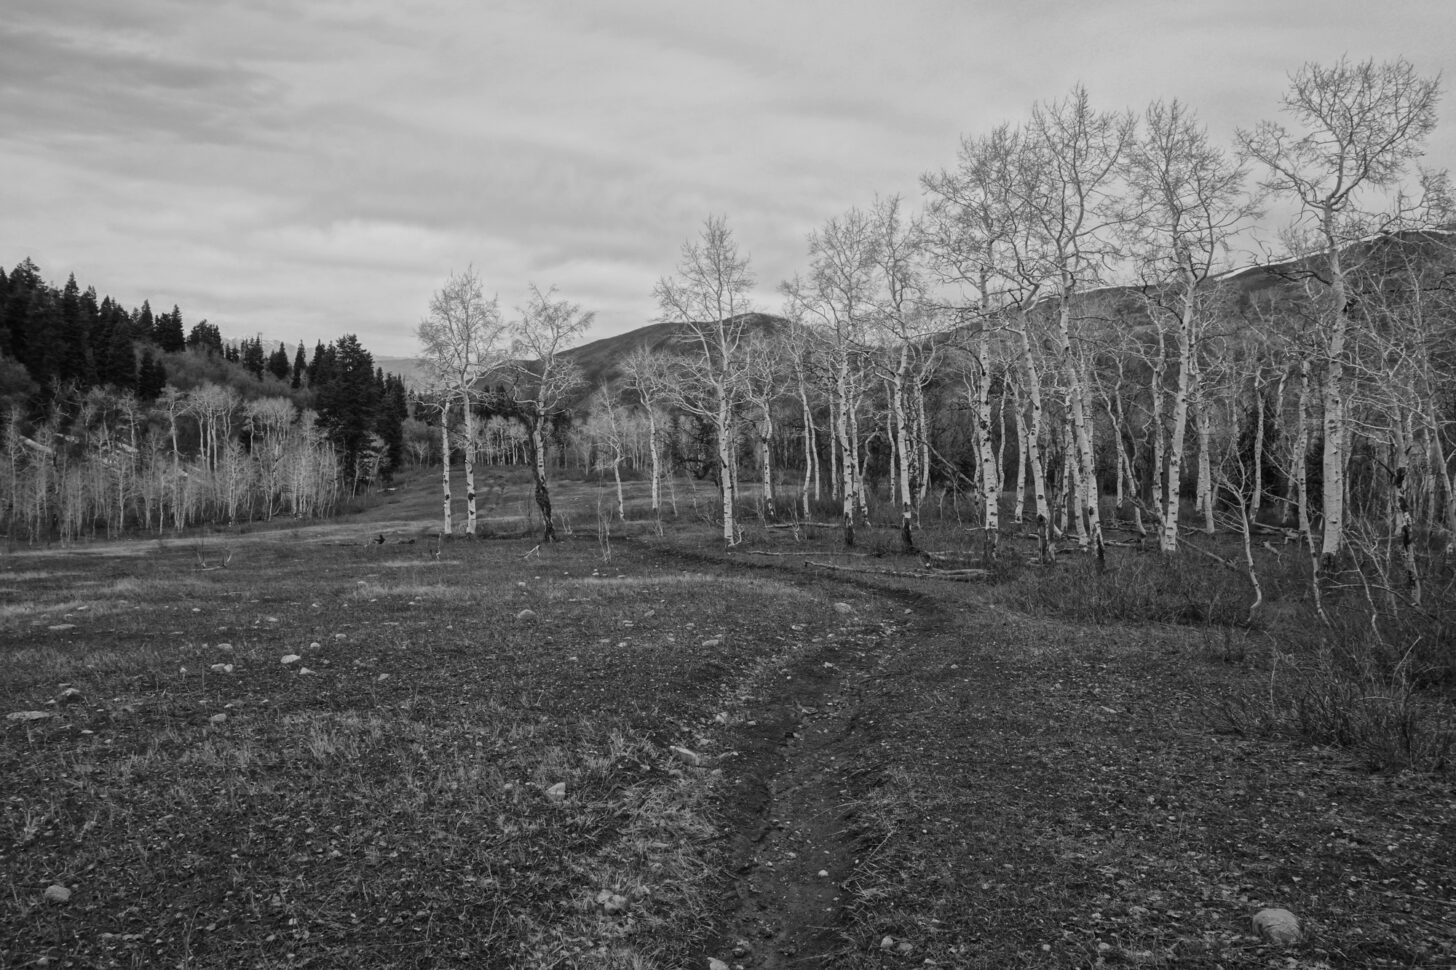 a black and white photo of bare trees with a path running through them.